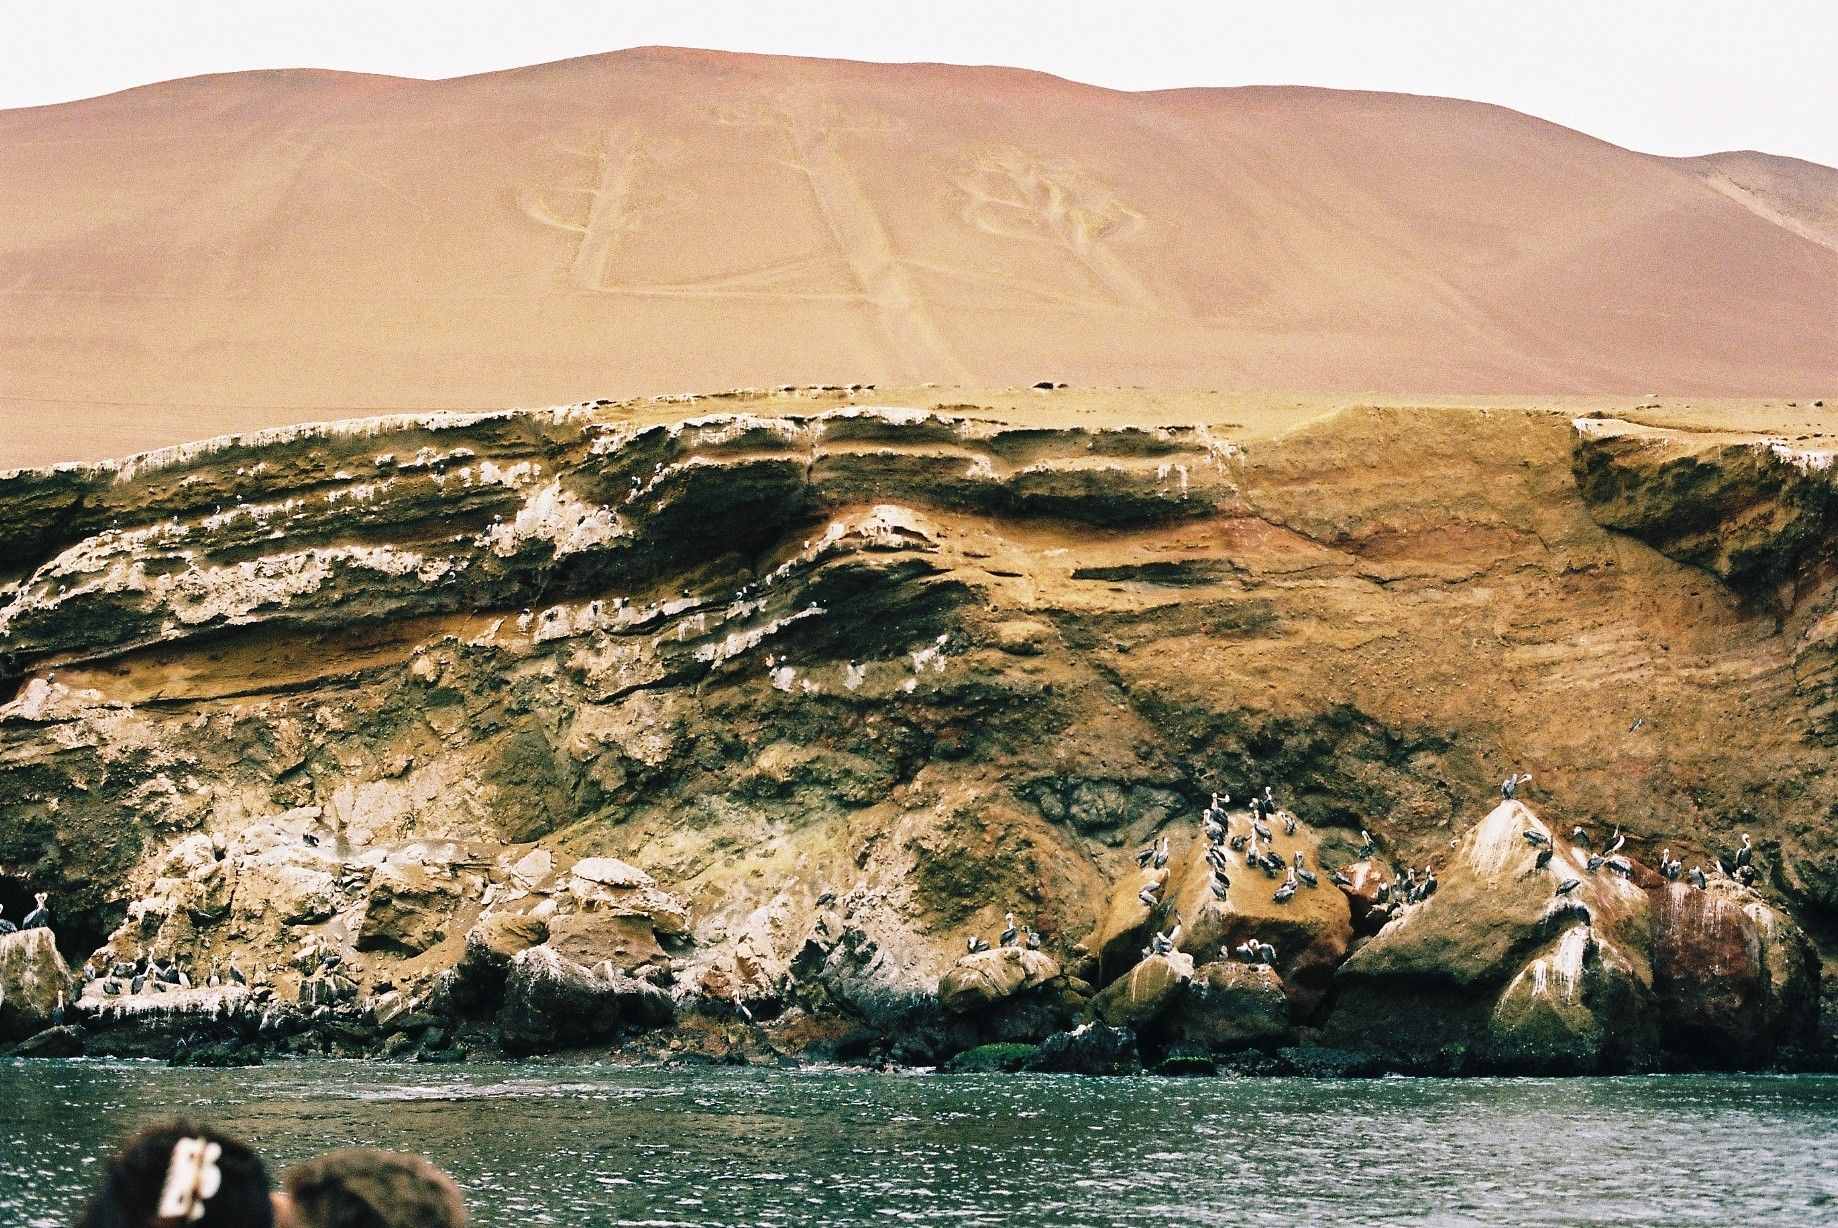 Candelabra Of The Andes Or Paracas Candelabra By Alice